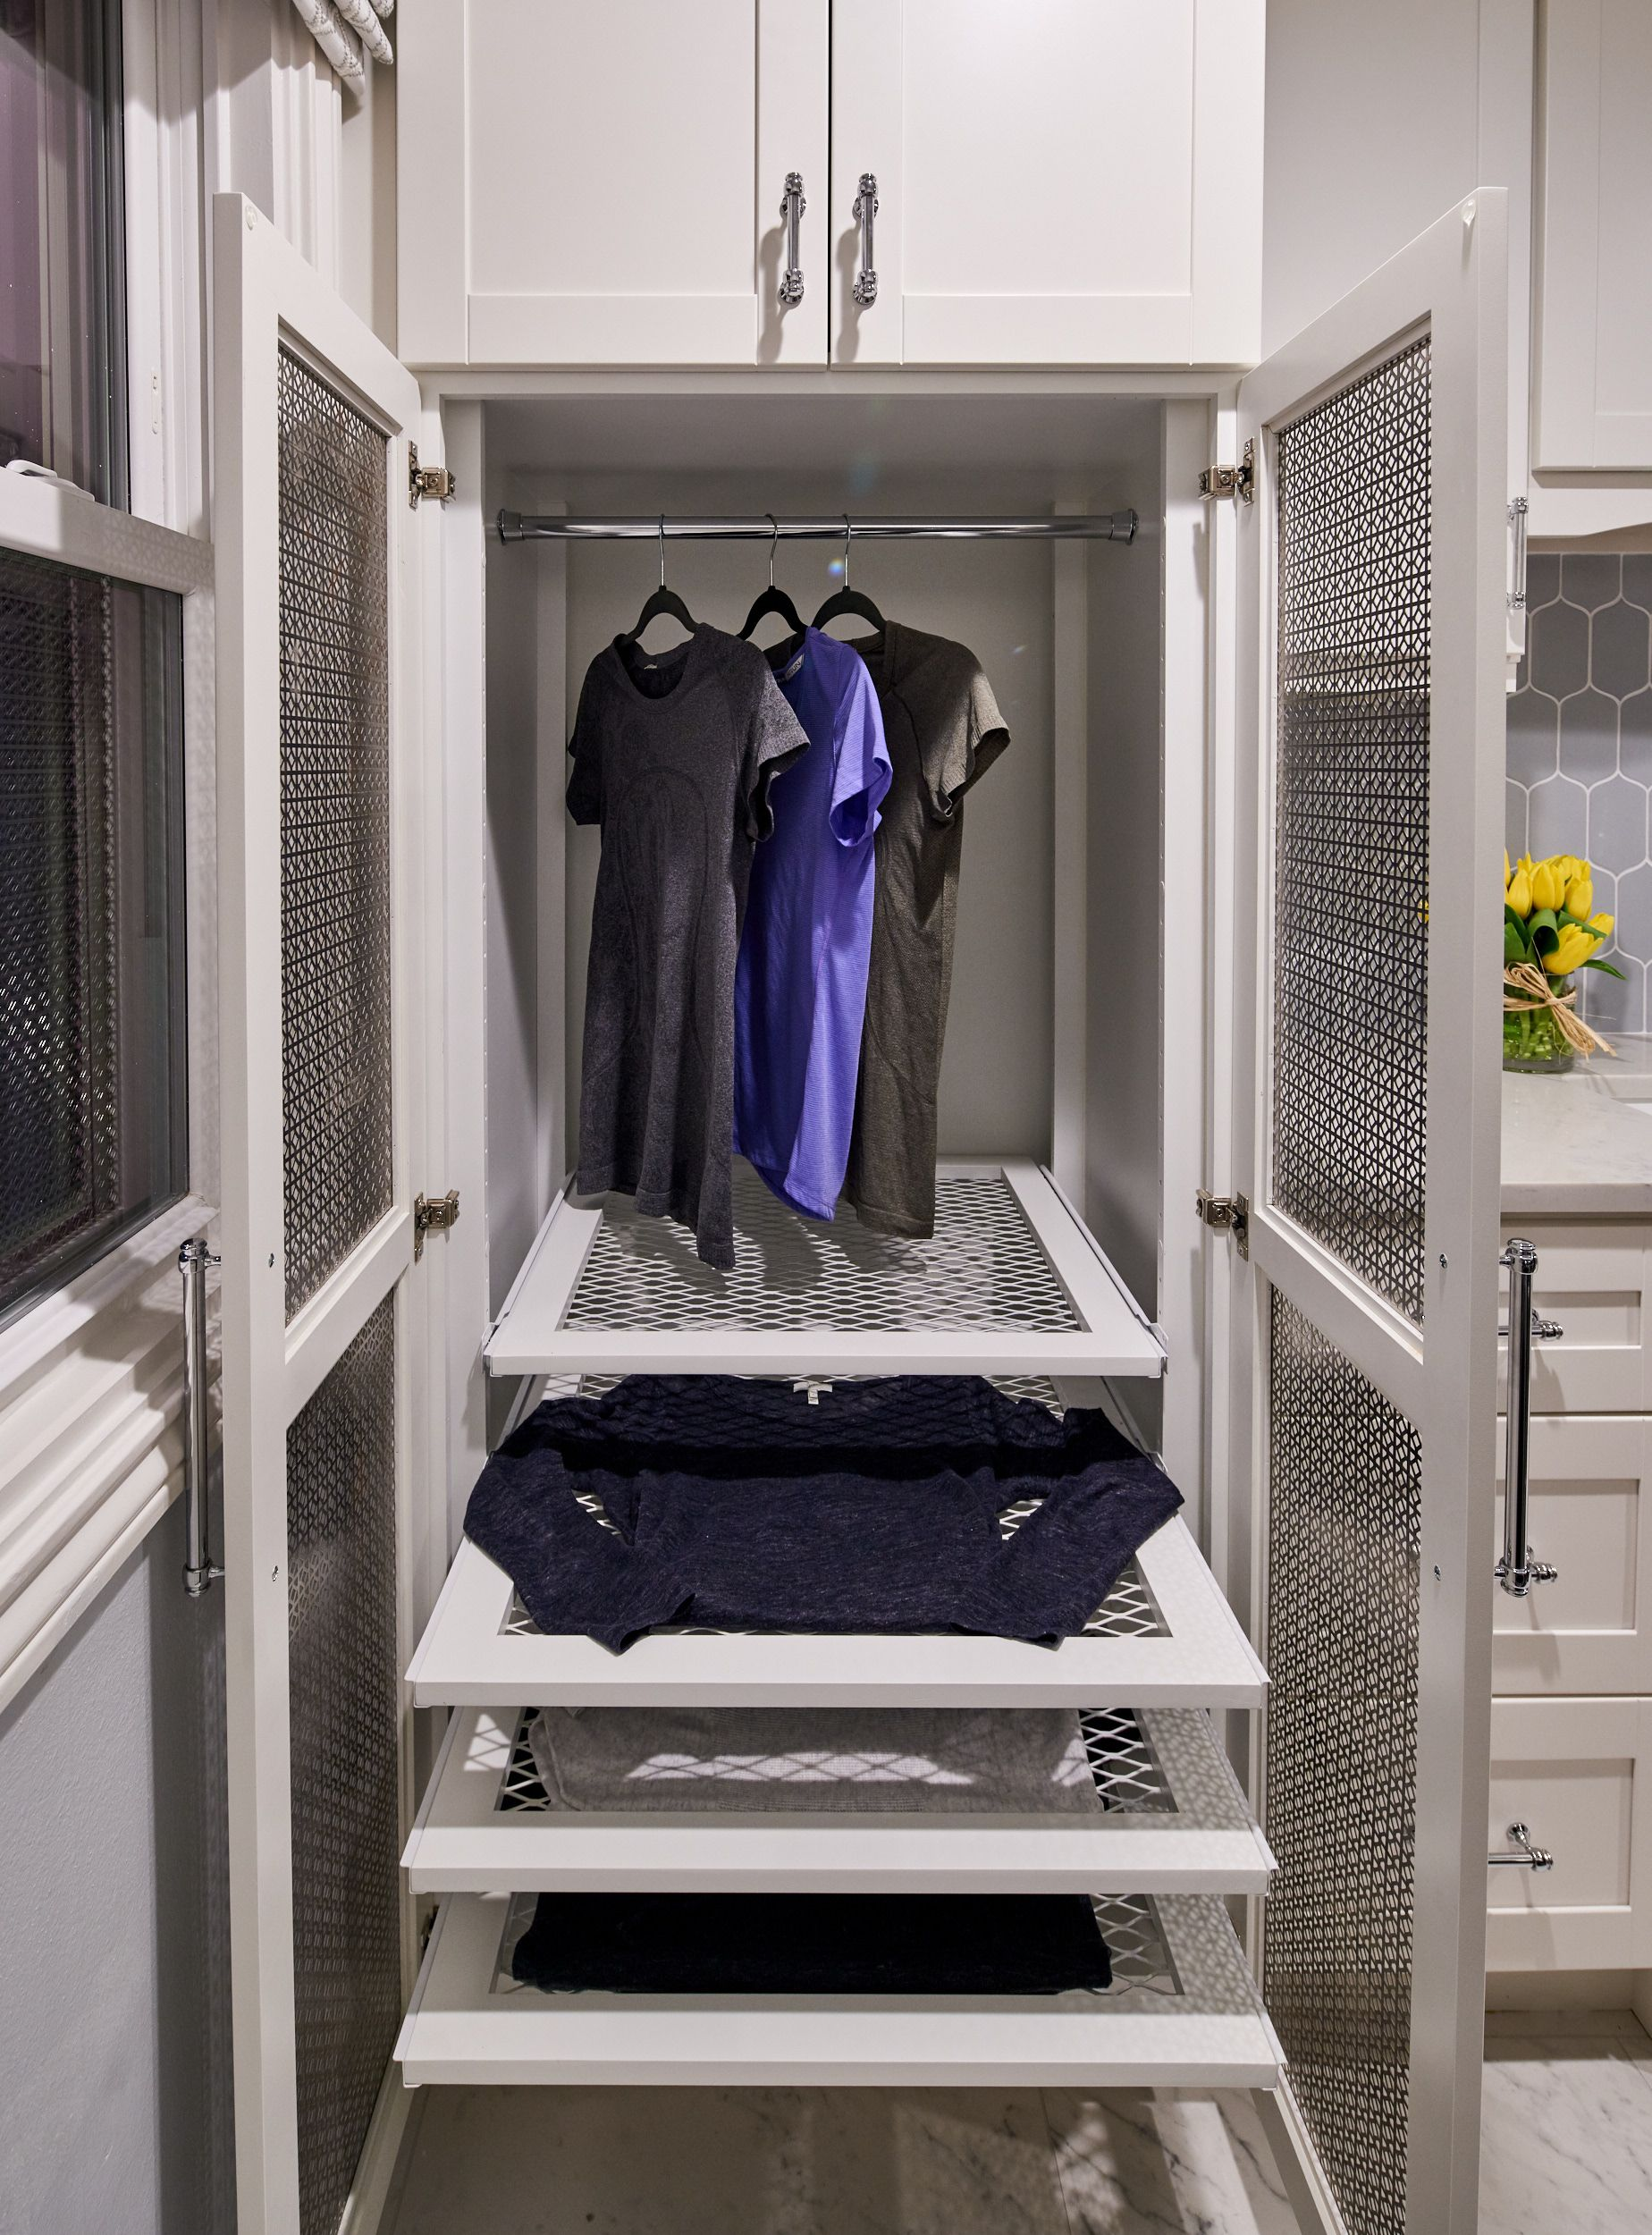 Custom Drying Cabinet For Laundry Room Featuring Pullout Drying